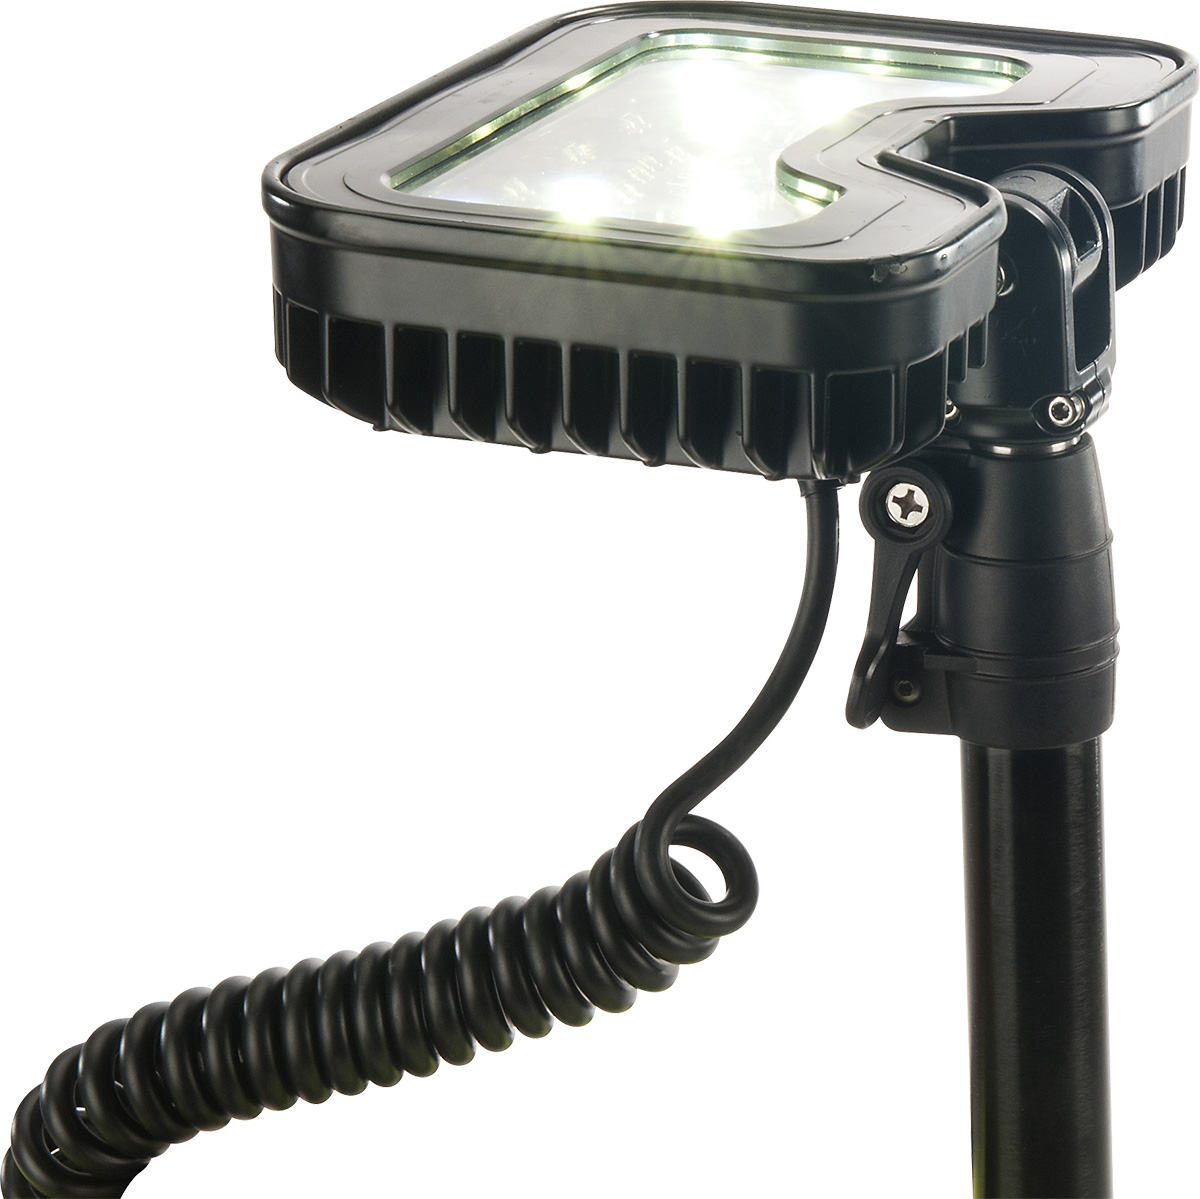 Pelican 9455 remote area light class1 div1 safety for Html div class